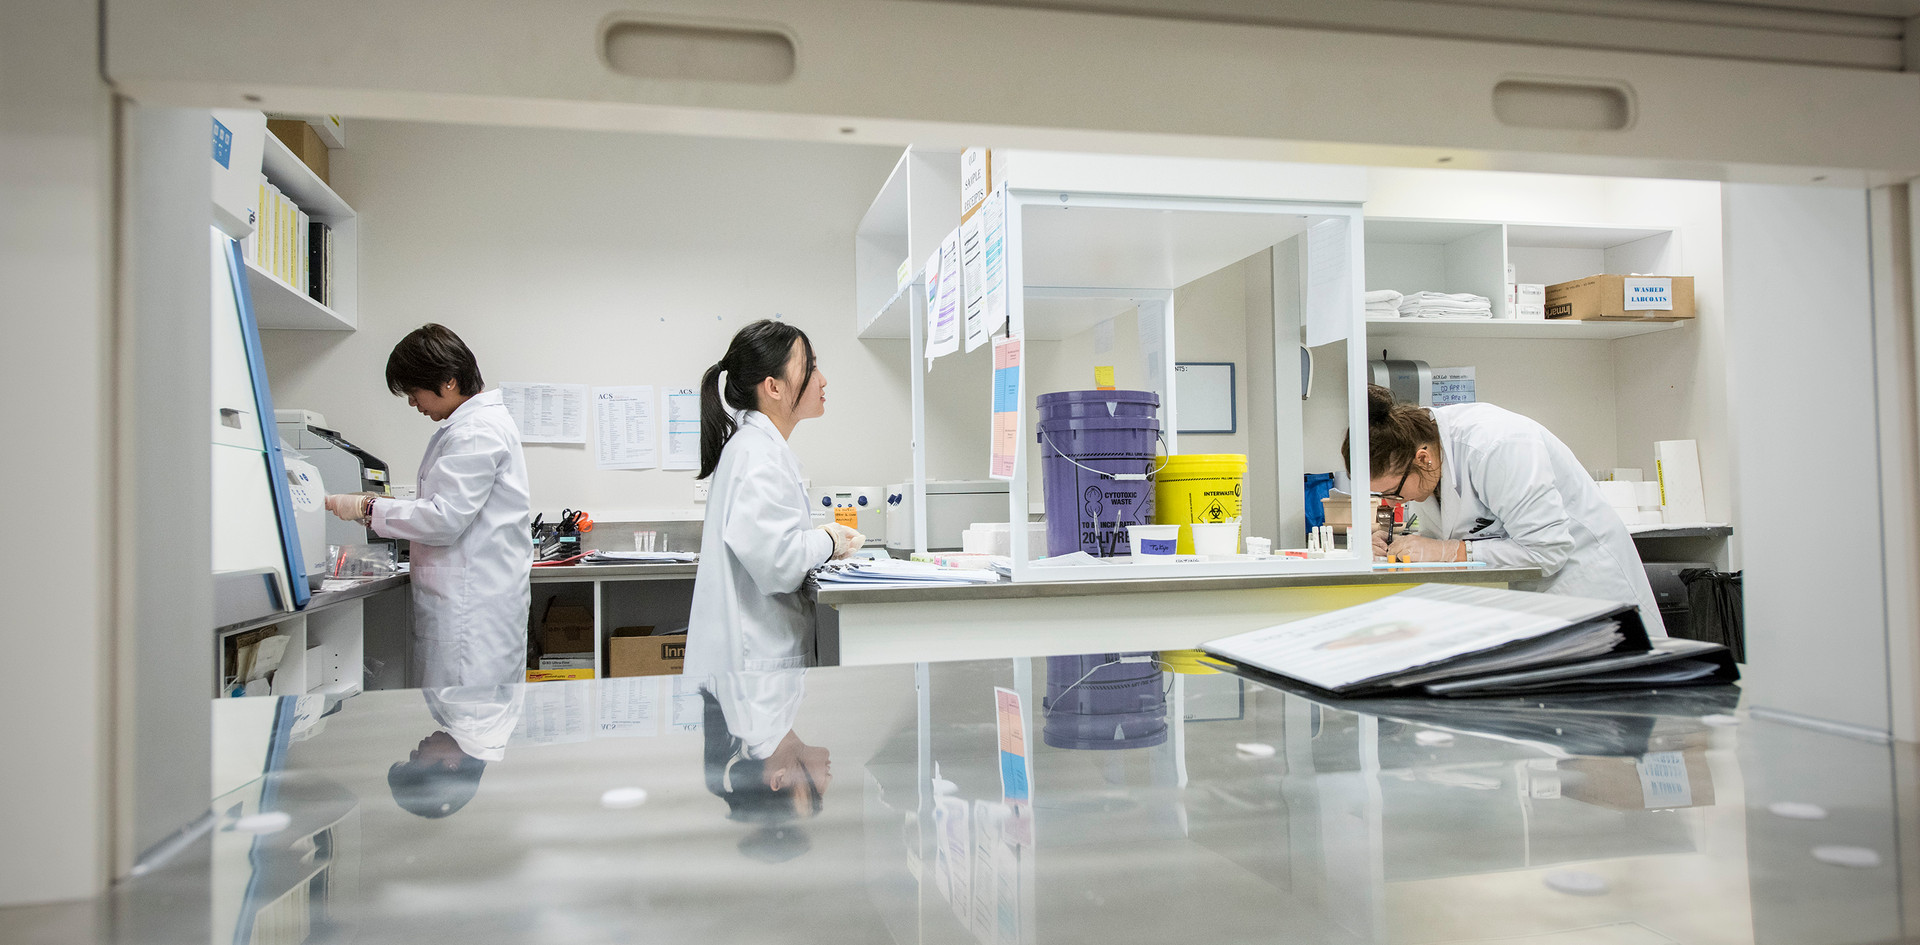 Auckland Clinical Studies Laboratory